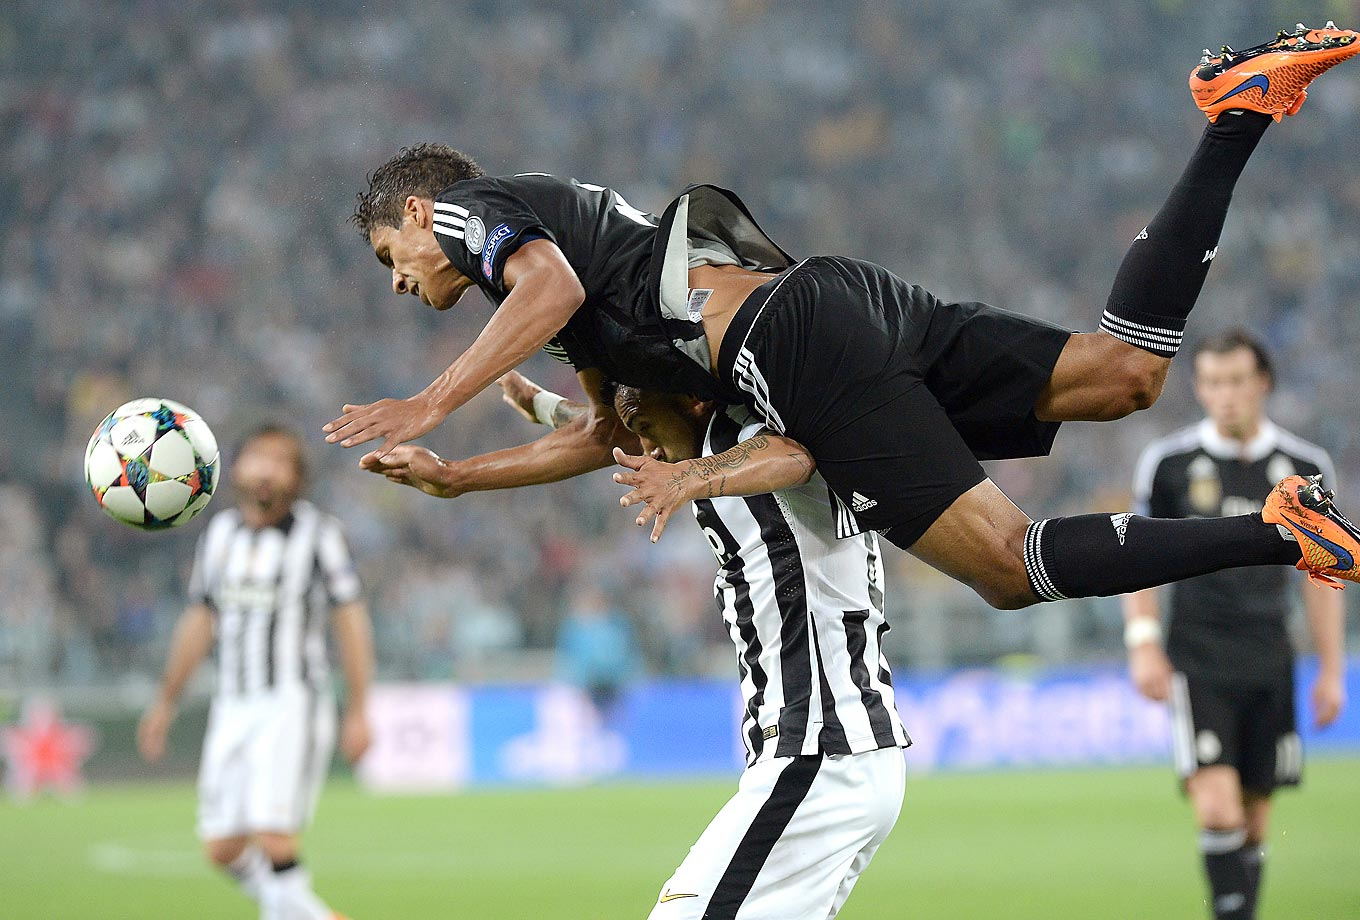 Raphael Varene of Real Madrid jumps over Arturo Vidal of Juventus during a Champions League semifinal soccer match.